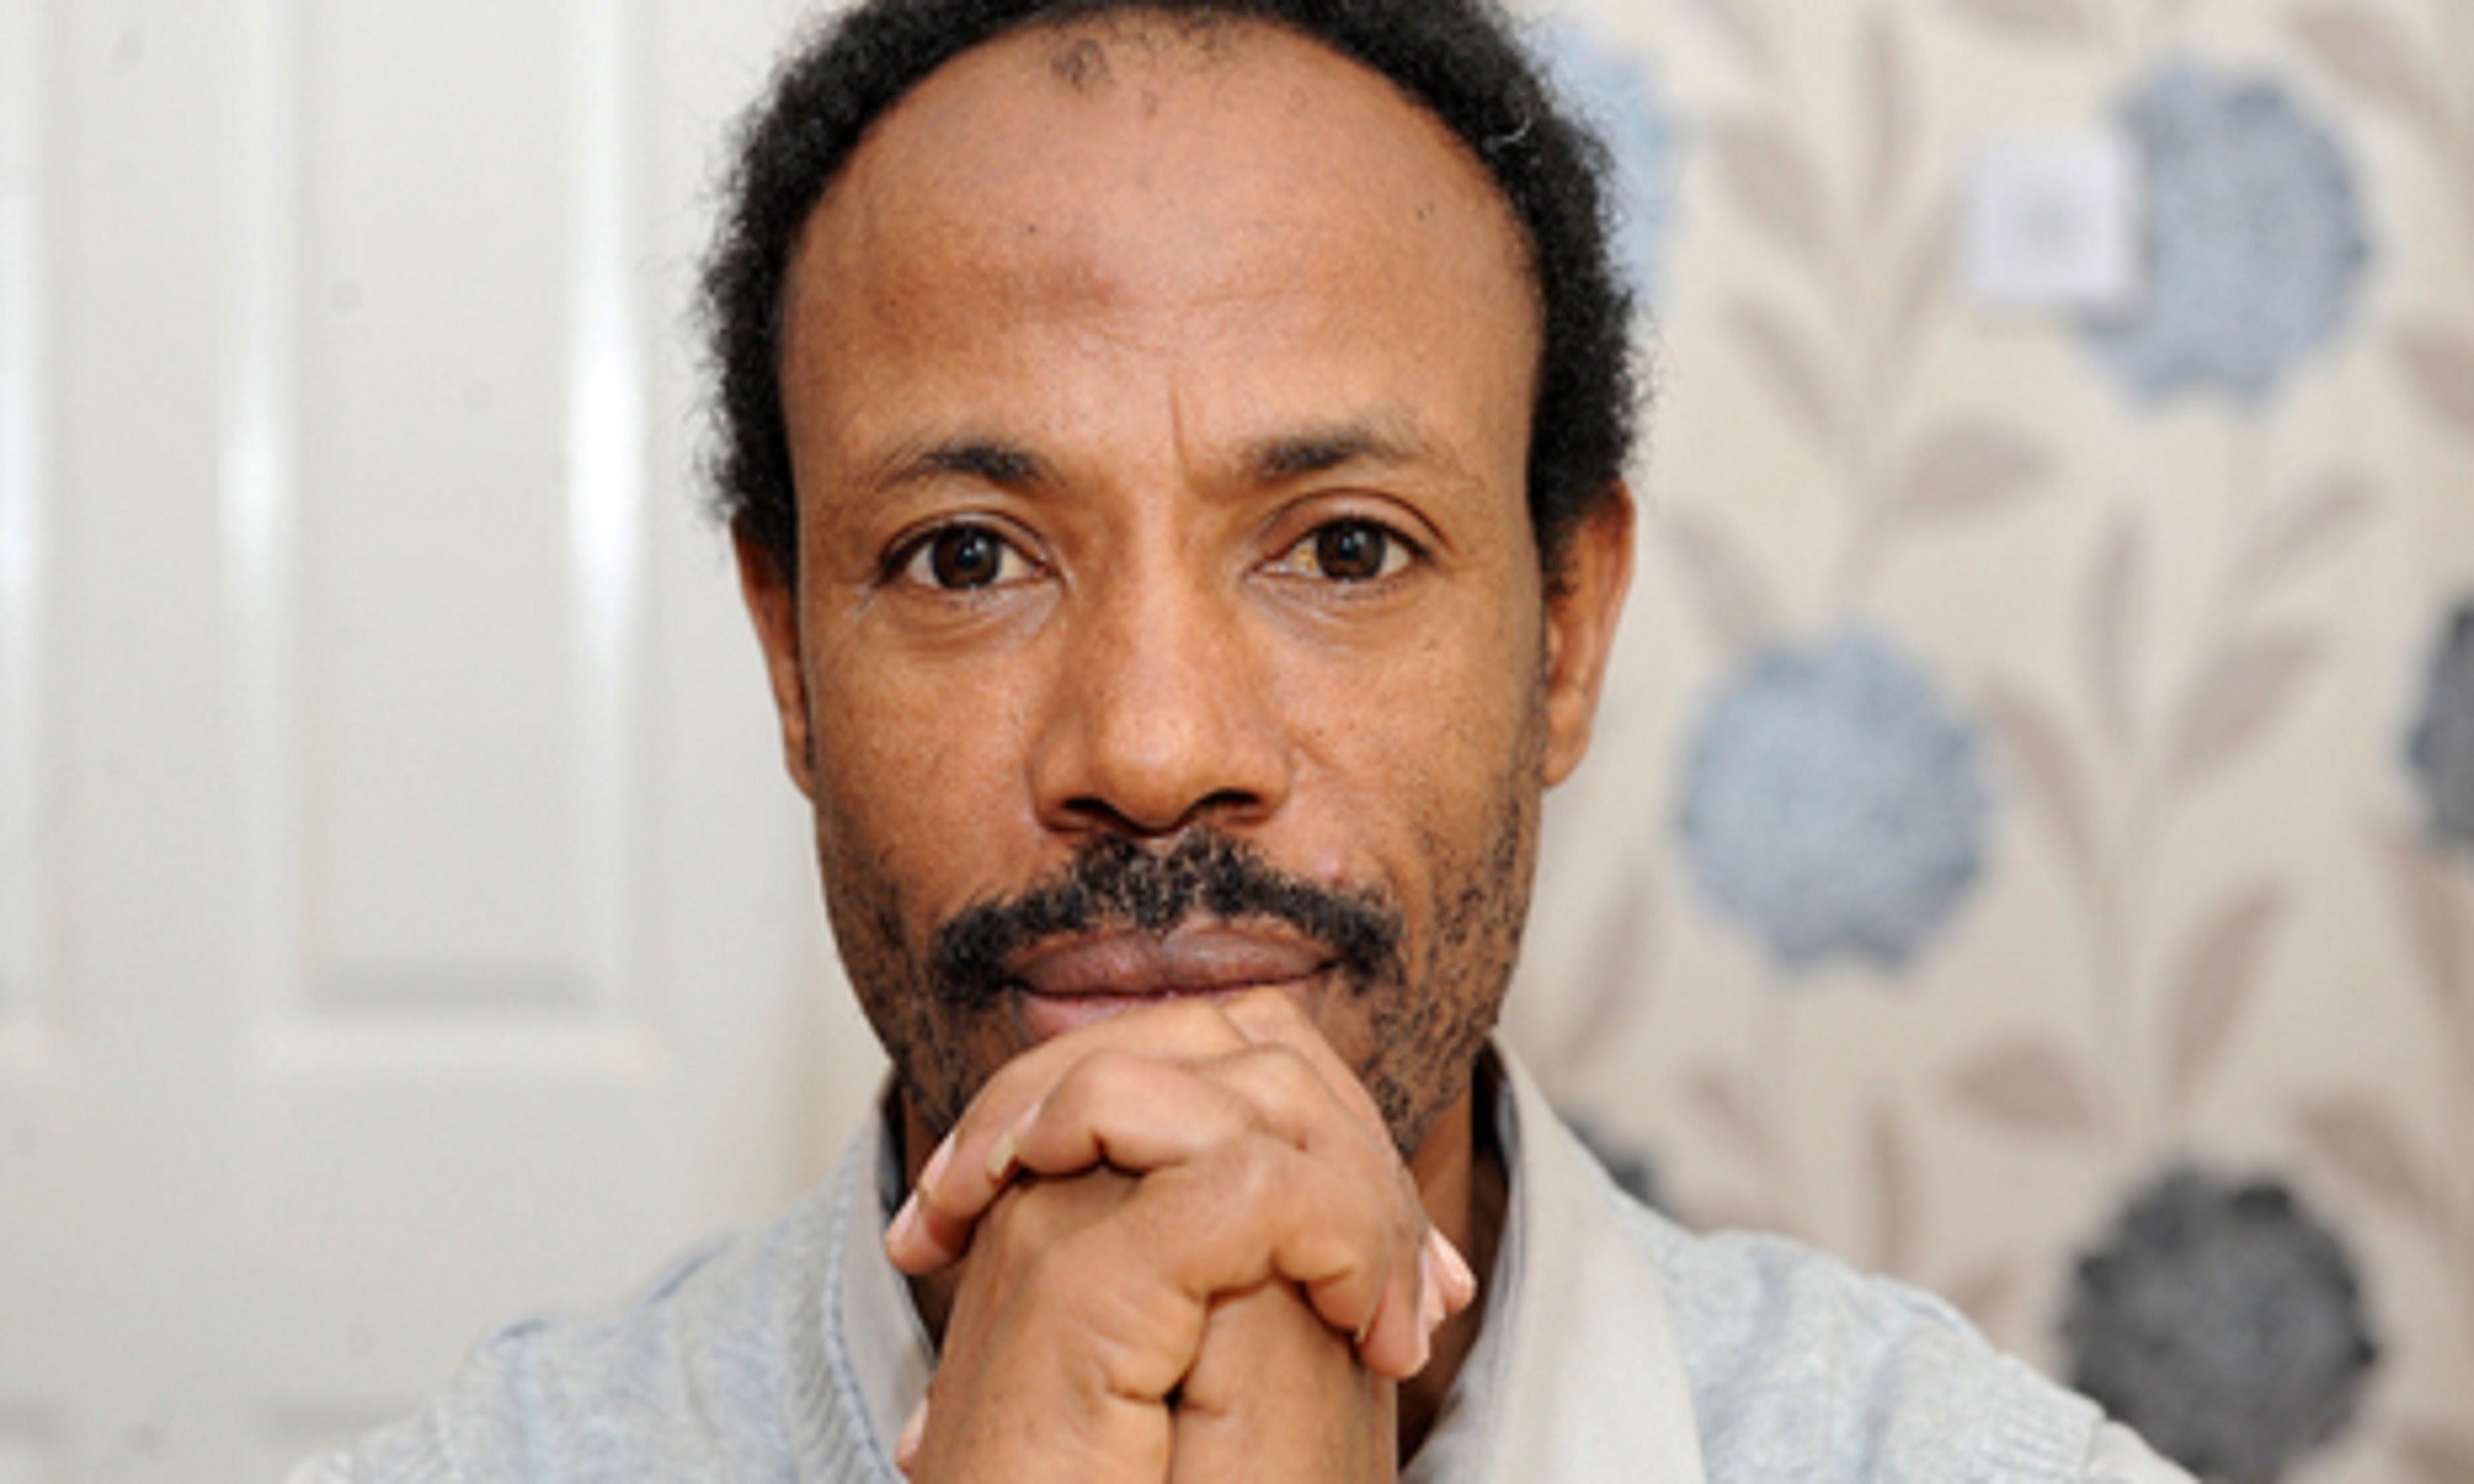 Portrait photo of Abebe, a refugee from Ethiopia